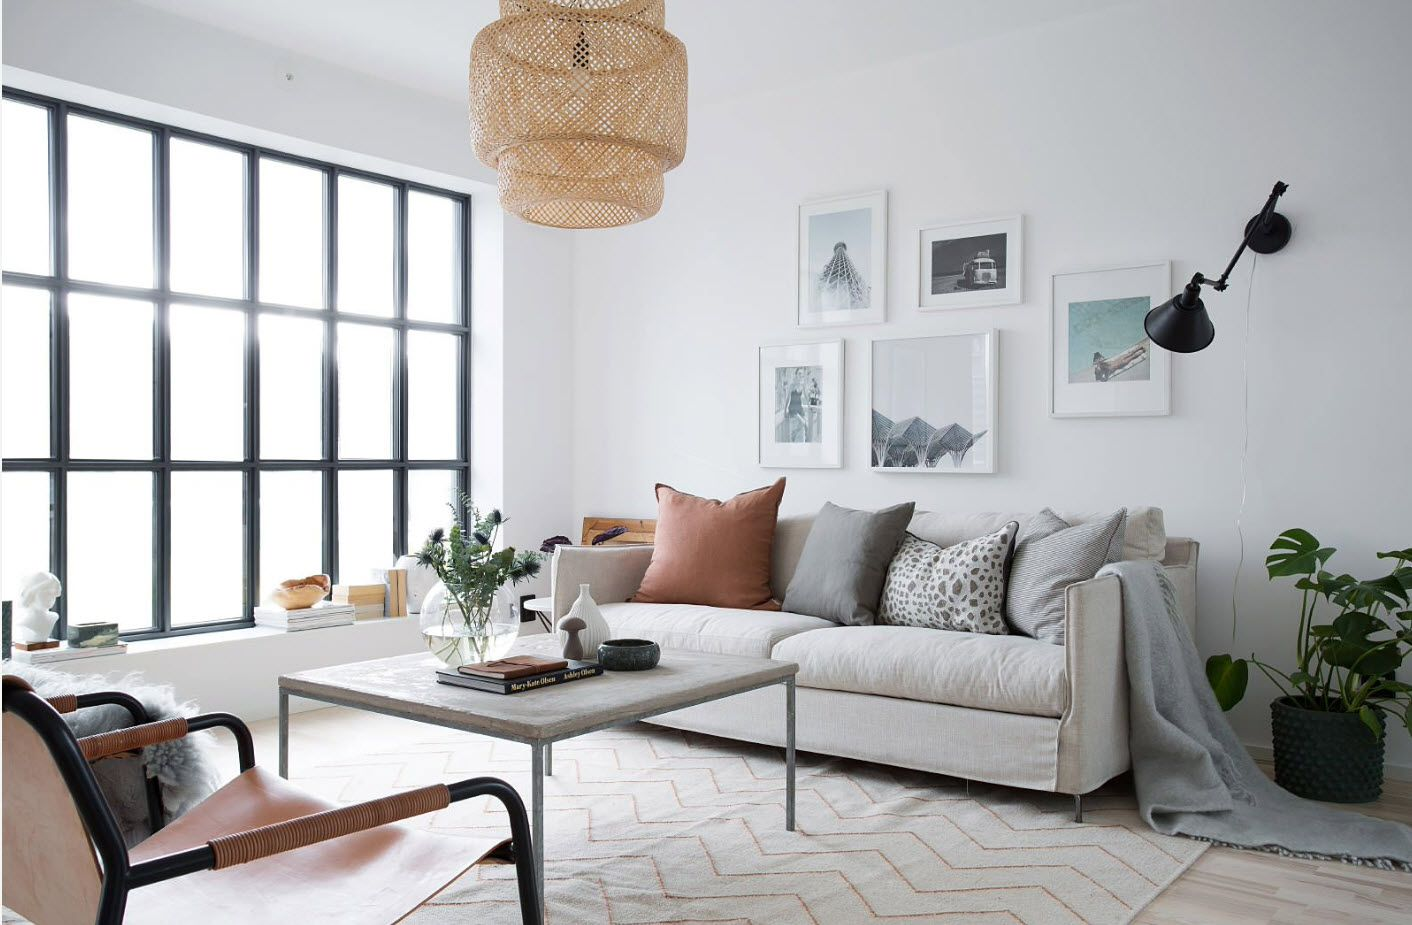 Modern white colored room with pictures as a decoration